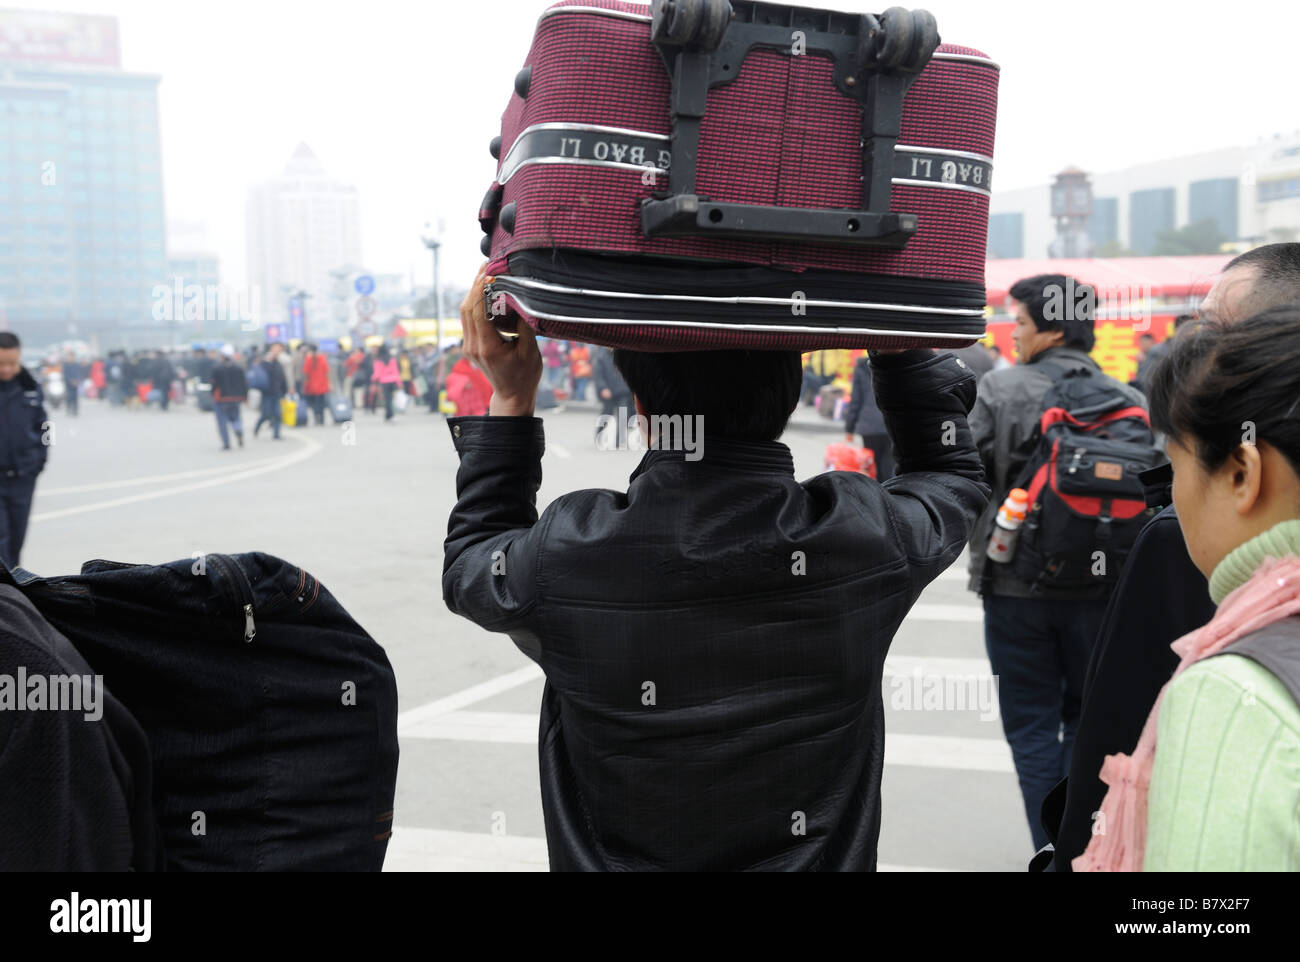 Migrant workers carry their luggage leaving the train station in Nanchang, Jiangxi, China. 05-Feb-2009 - Stock Image